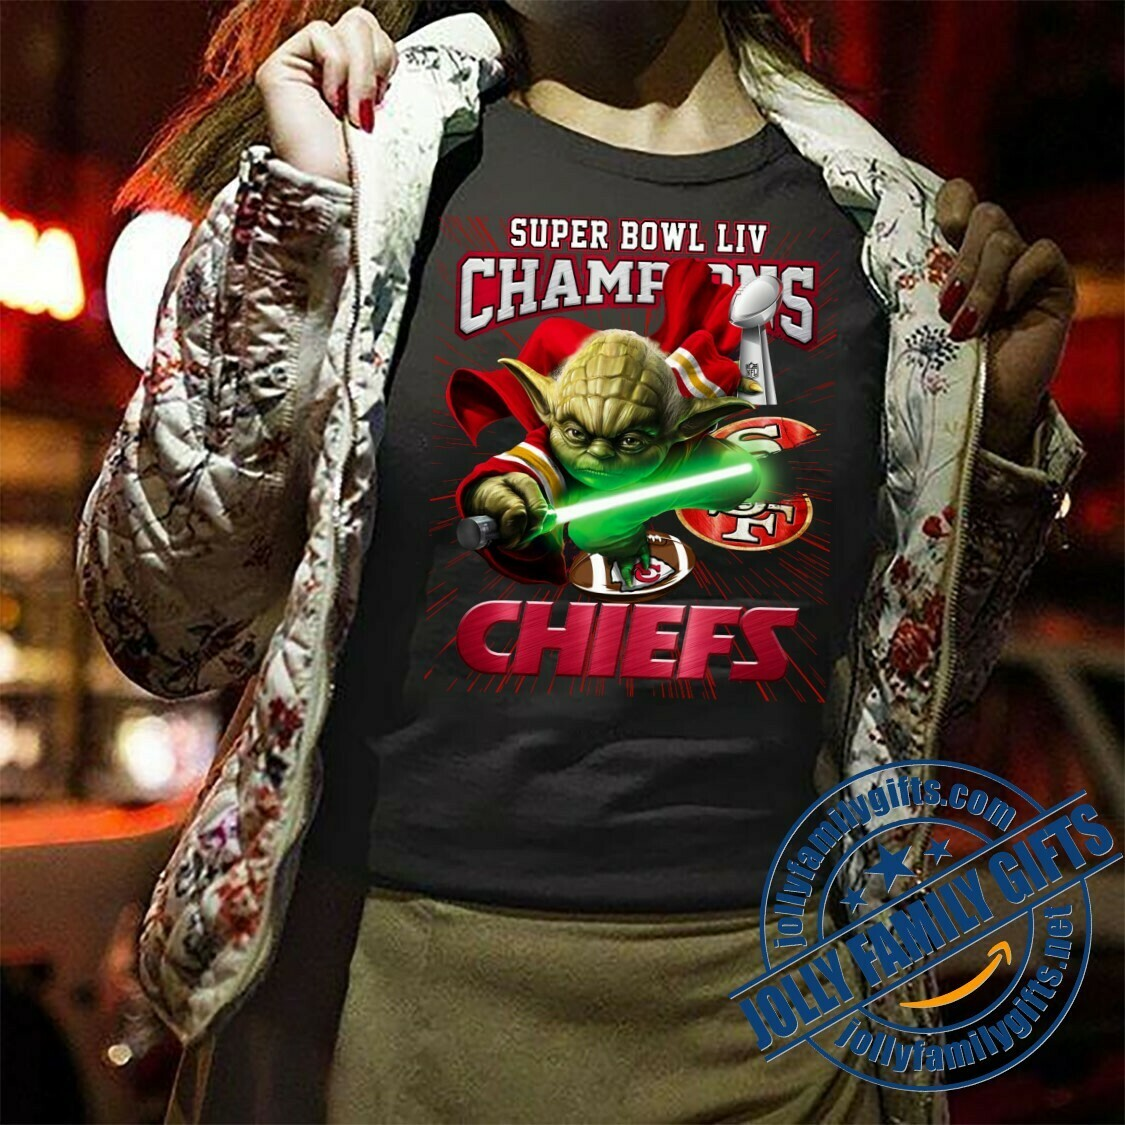 Yoga Master Kansas City Chiefs Super Bowl 54 2020 LIV Champions NFL Football Team Star Wars The Mandalorian The Child Fan Gift  T-Shirt Hoodie Sweatshirt Sweater Tee Kids Youth Gifts Jolly Family